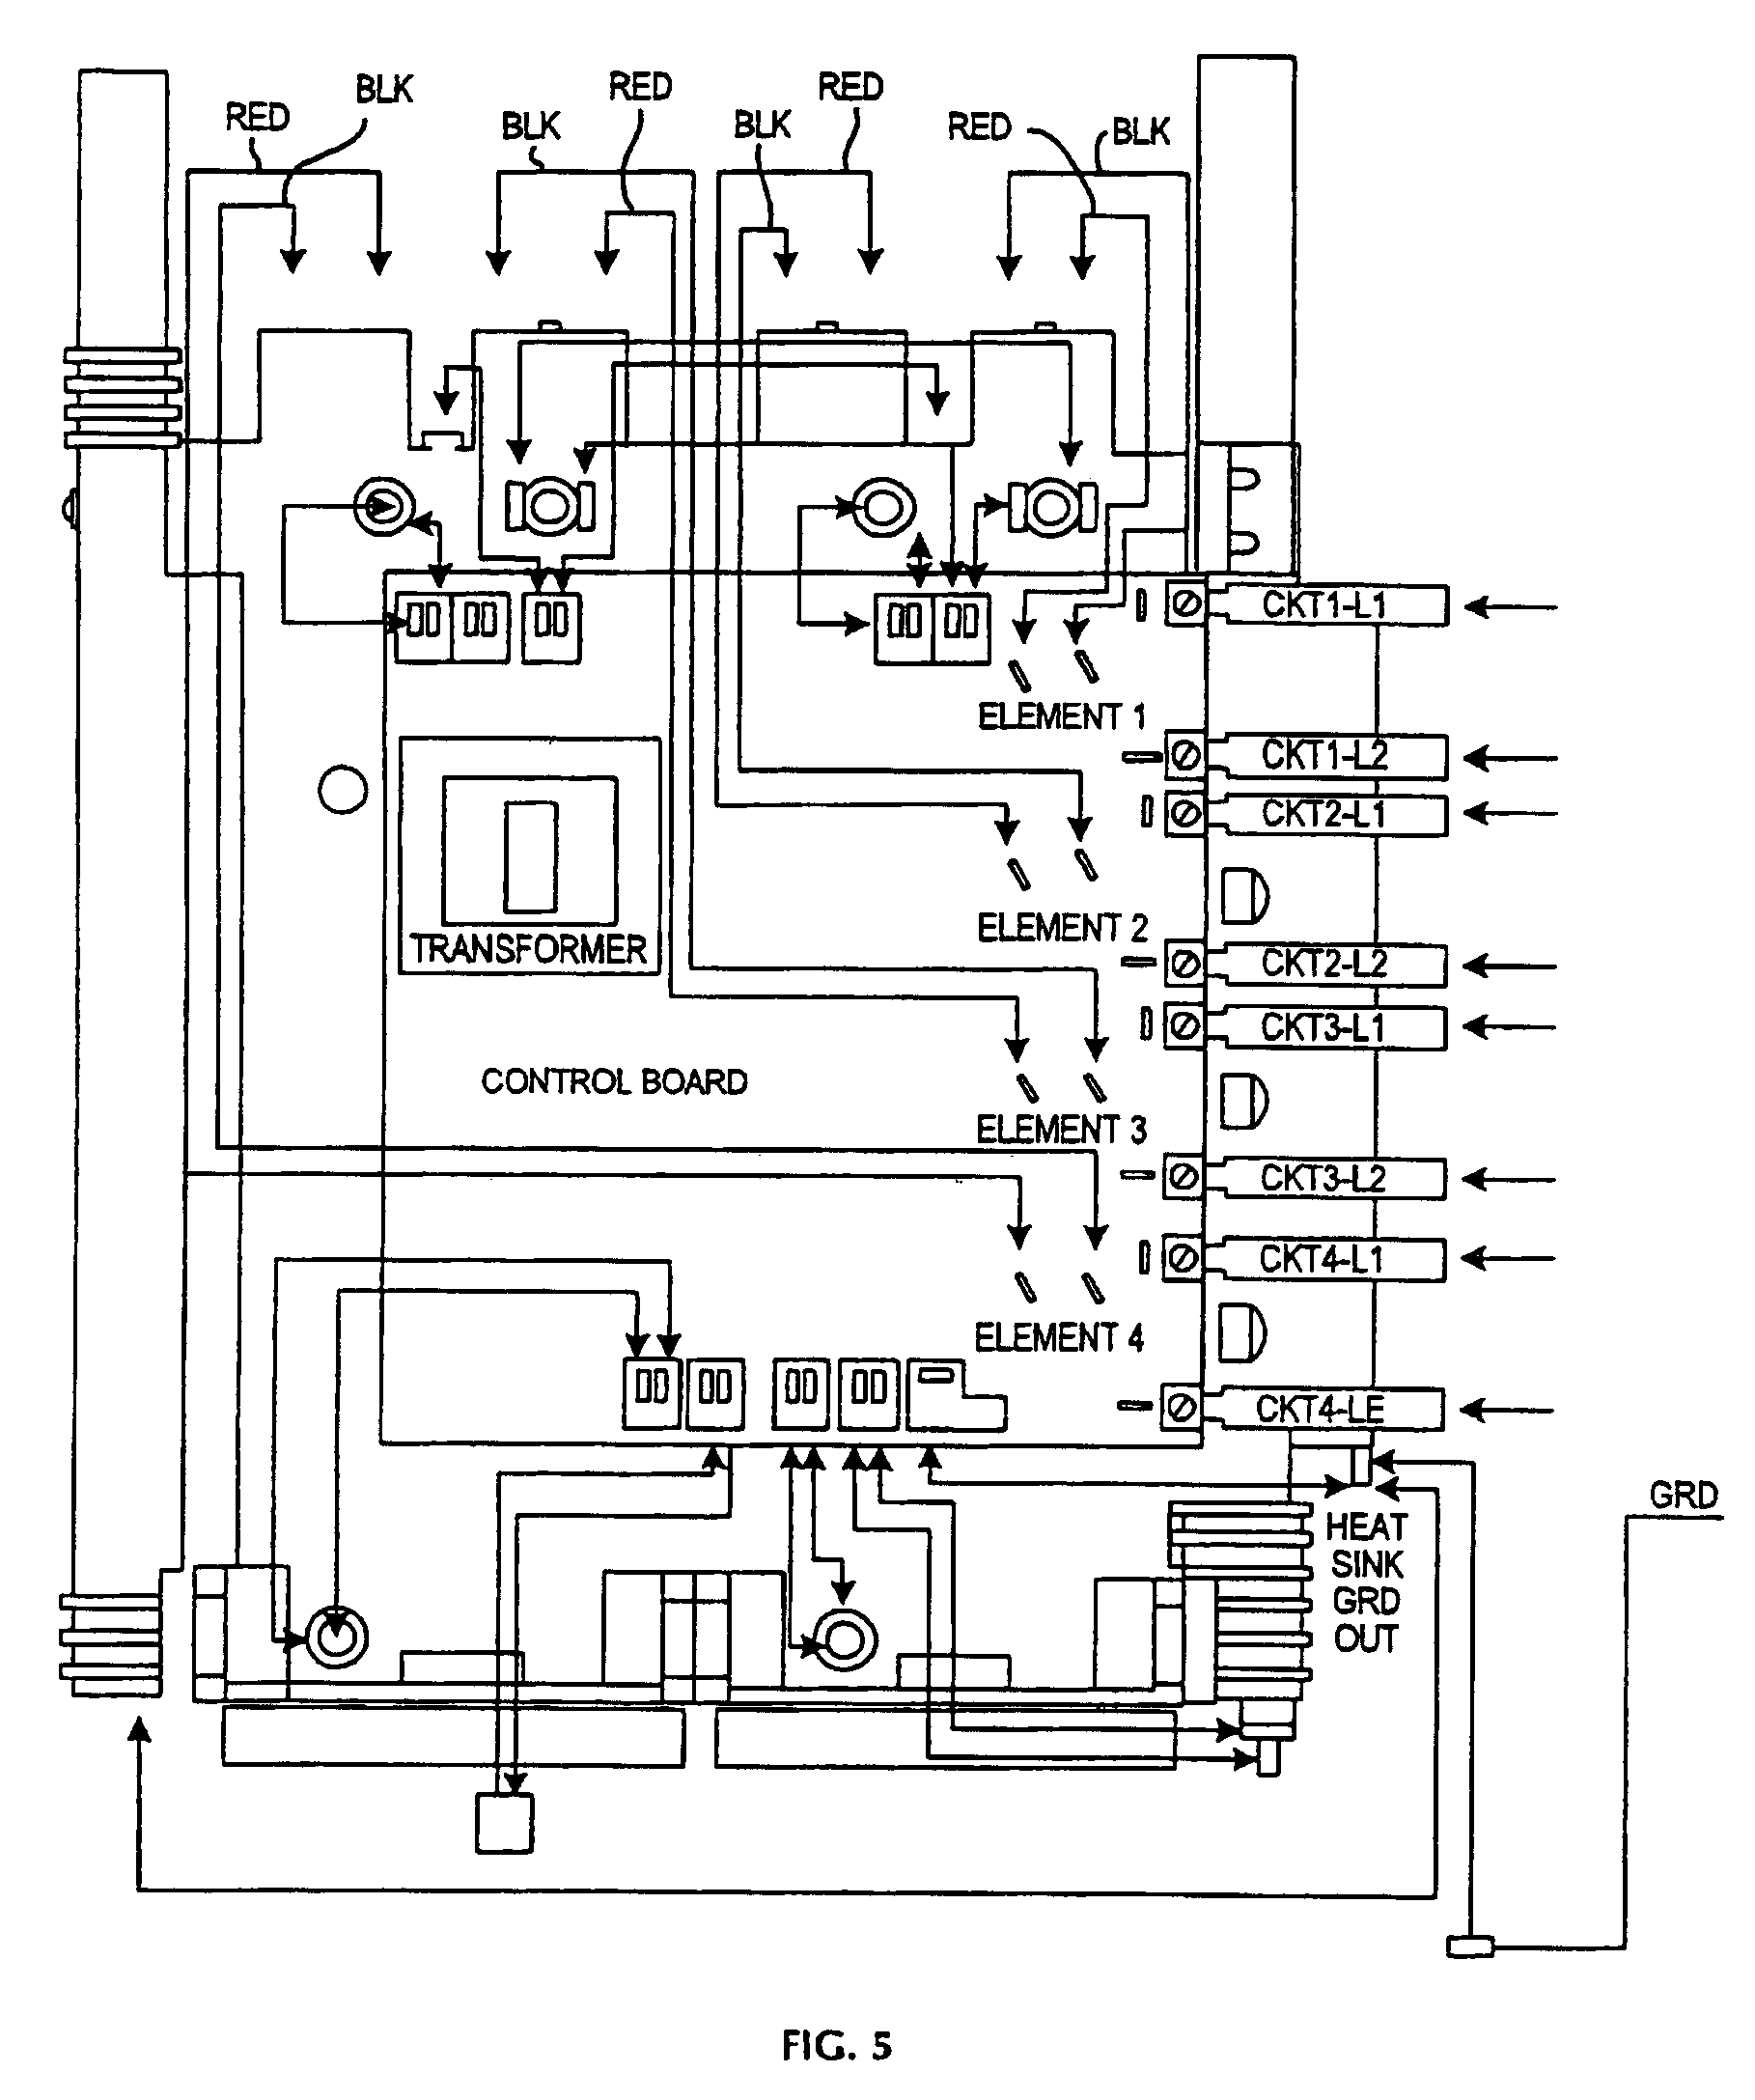 forced air furnace wiring diagram patent us7398778 - solar and heat pump powered electric ... furnace wiring diagram older furnace